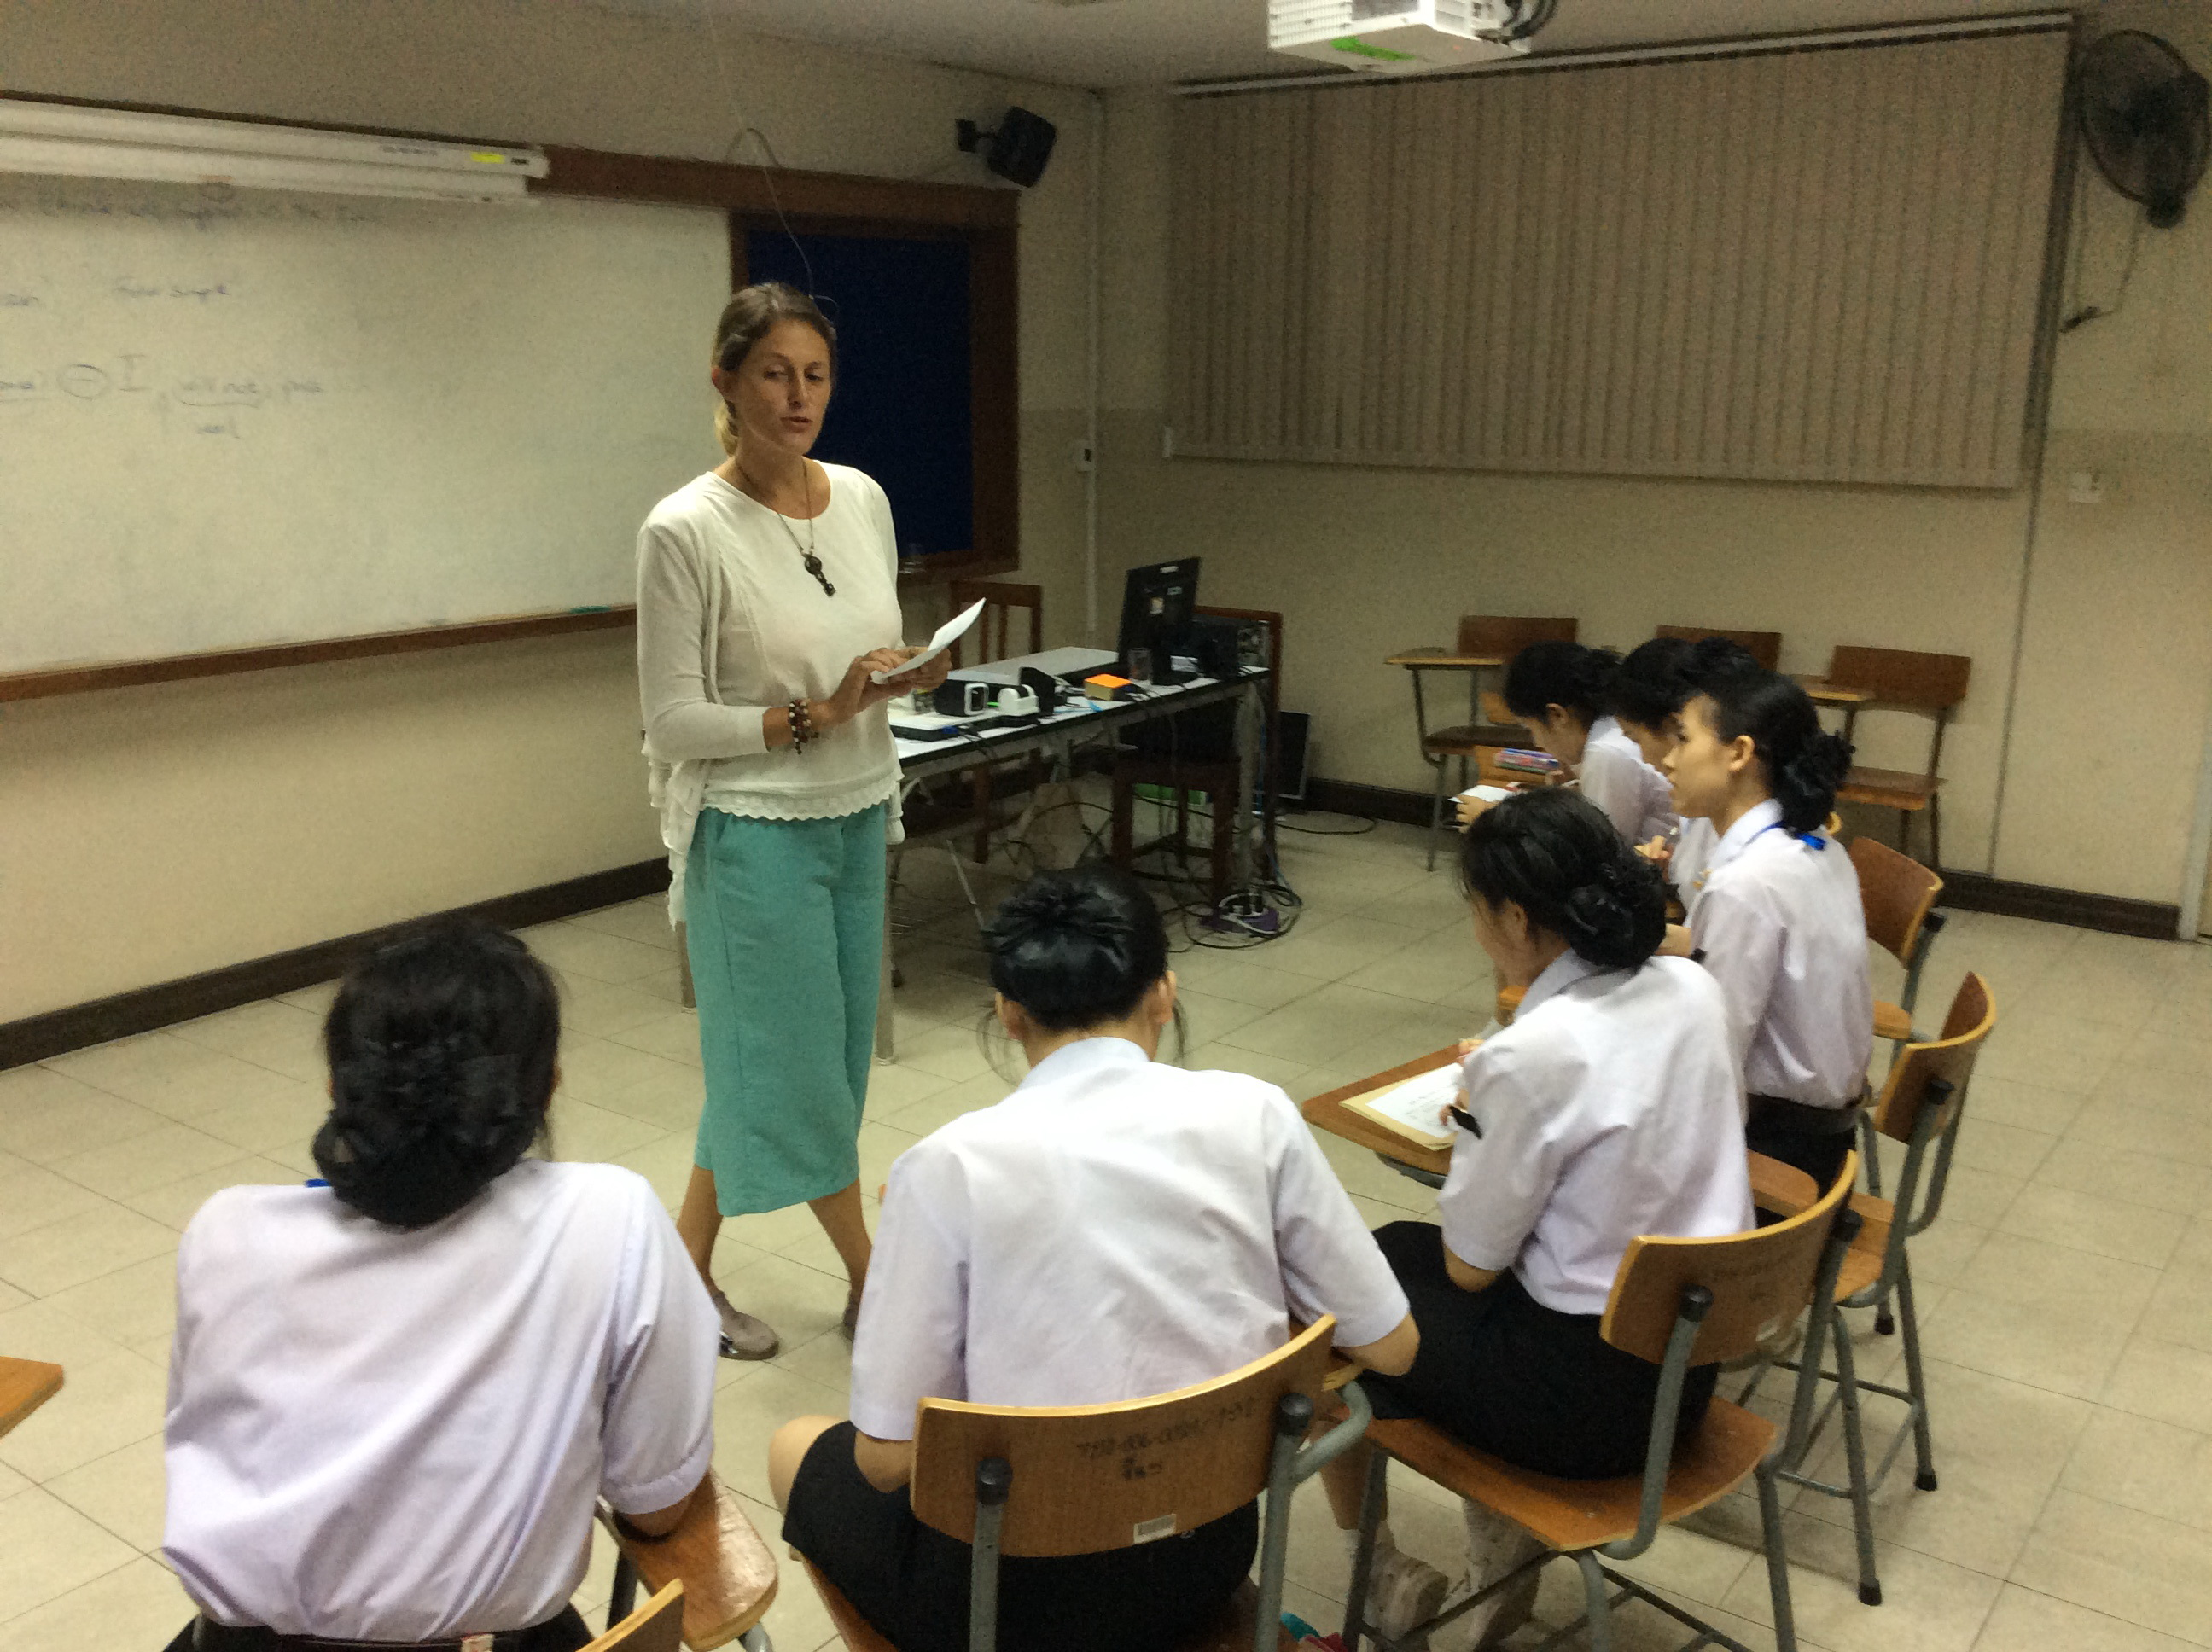 Observed teaching practice